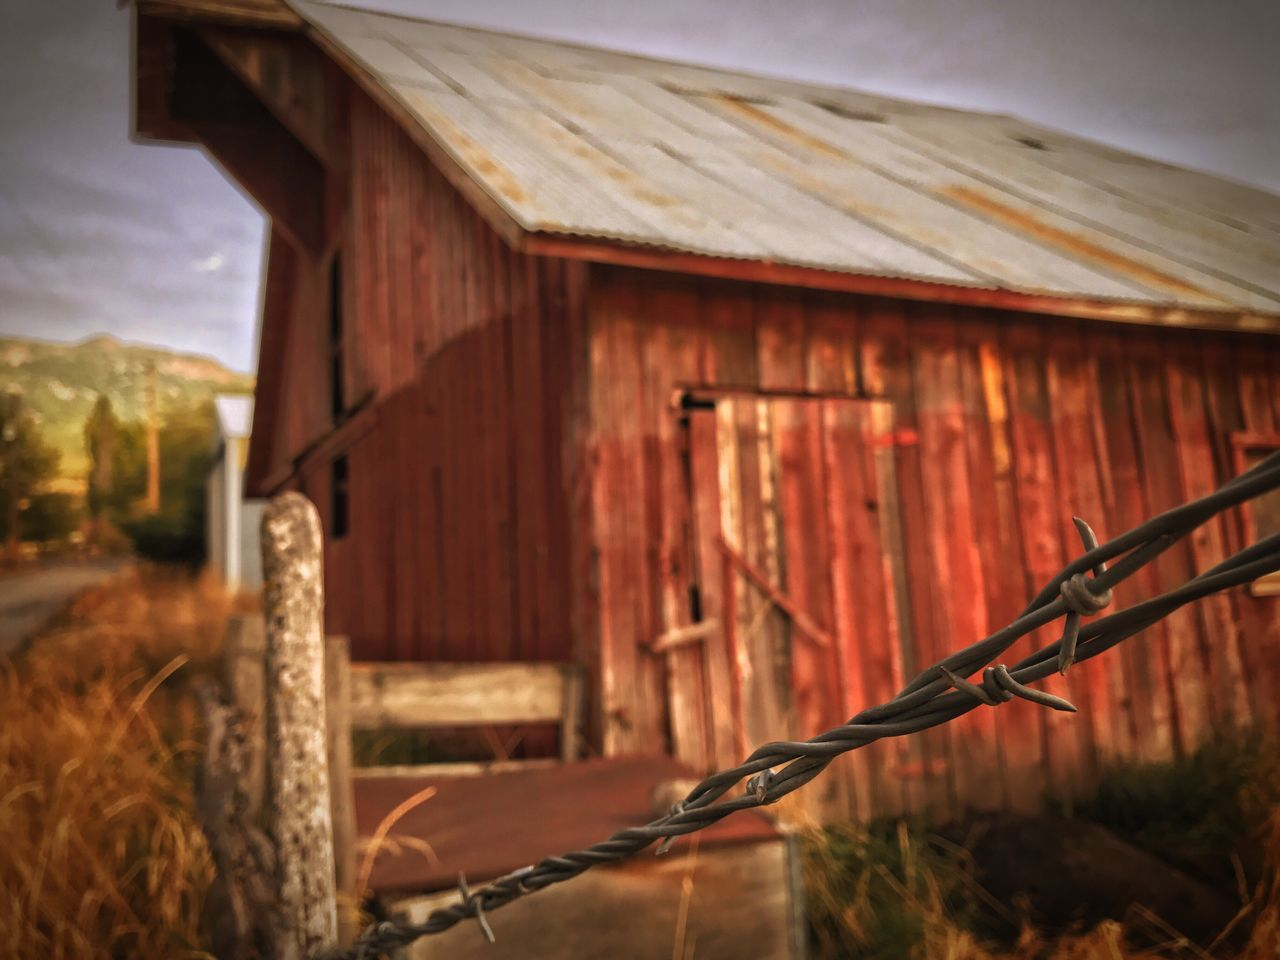 Built Structure Wood - Material Architecture Barn Barbed Wire Farm Life